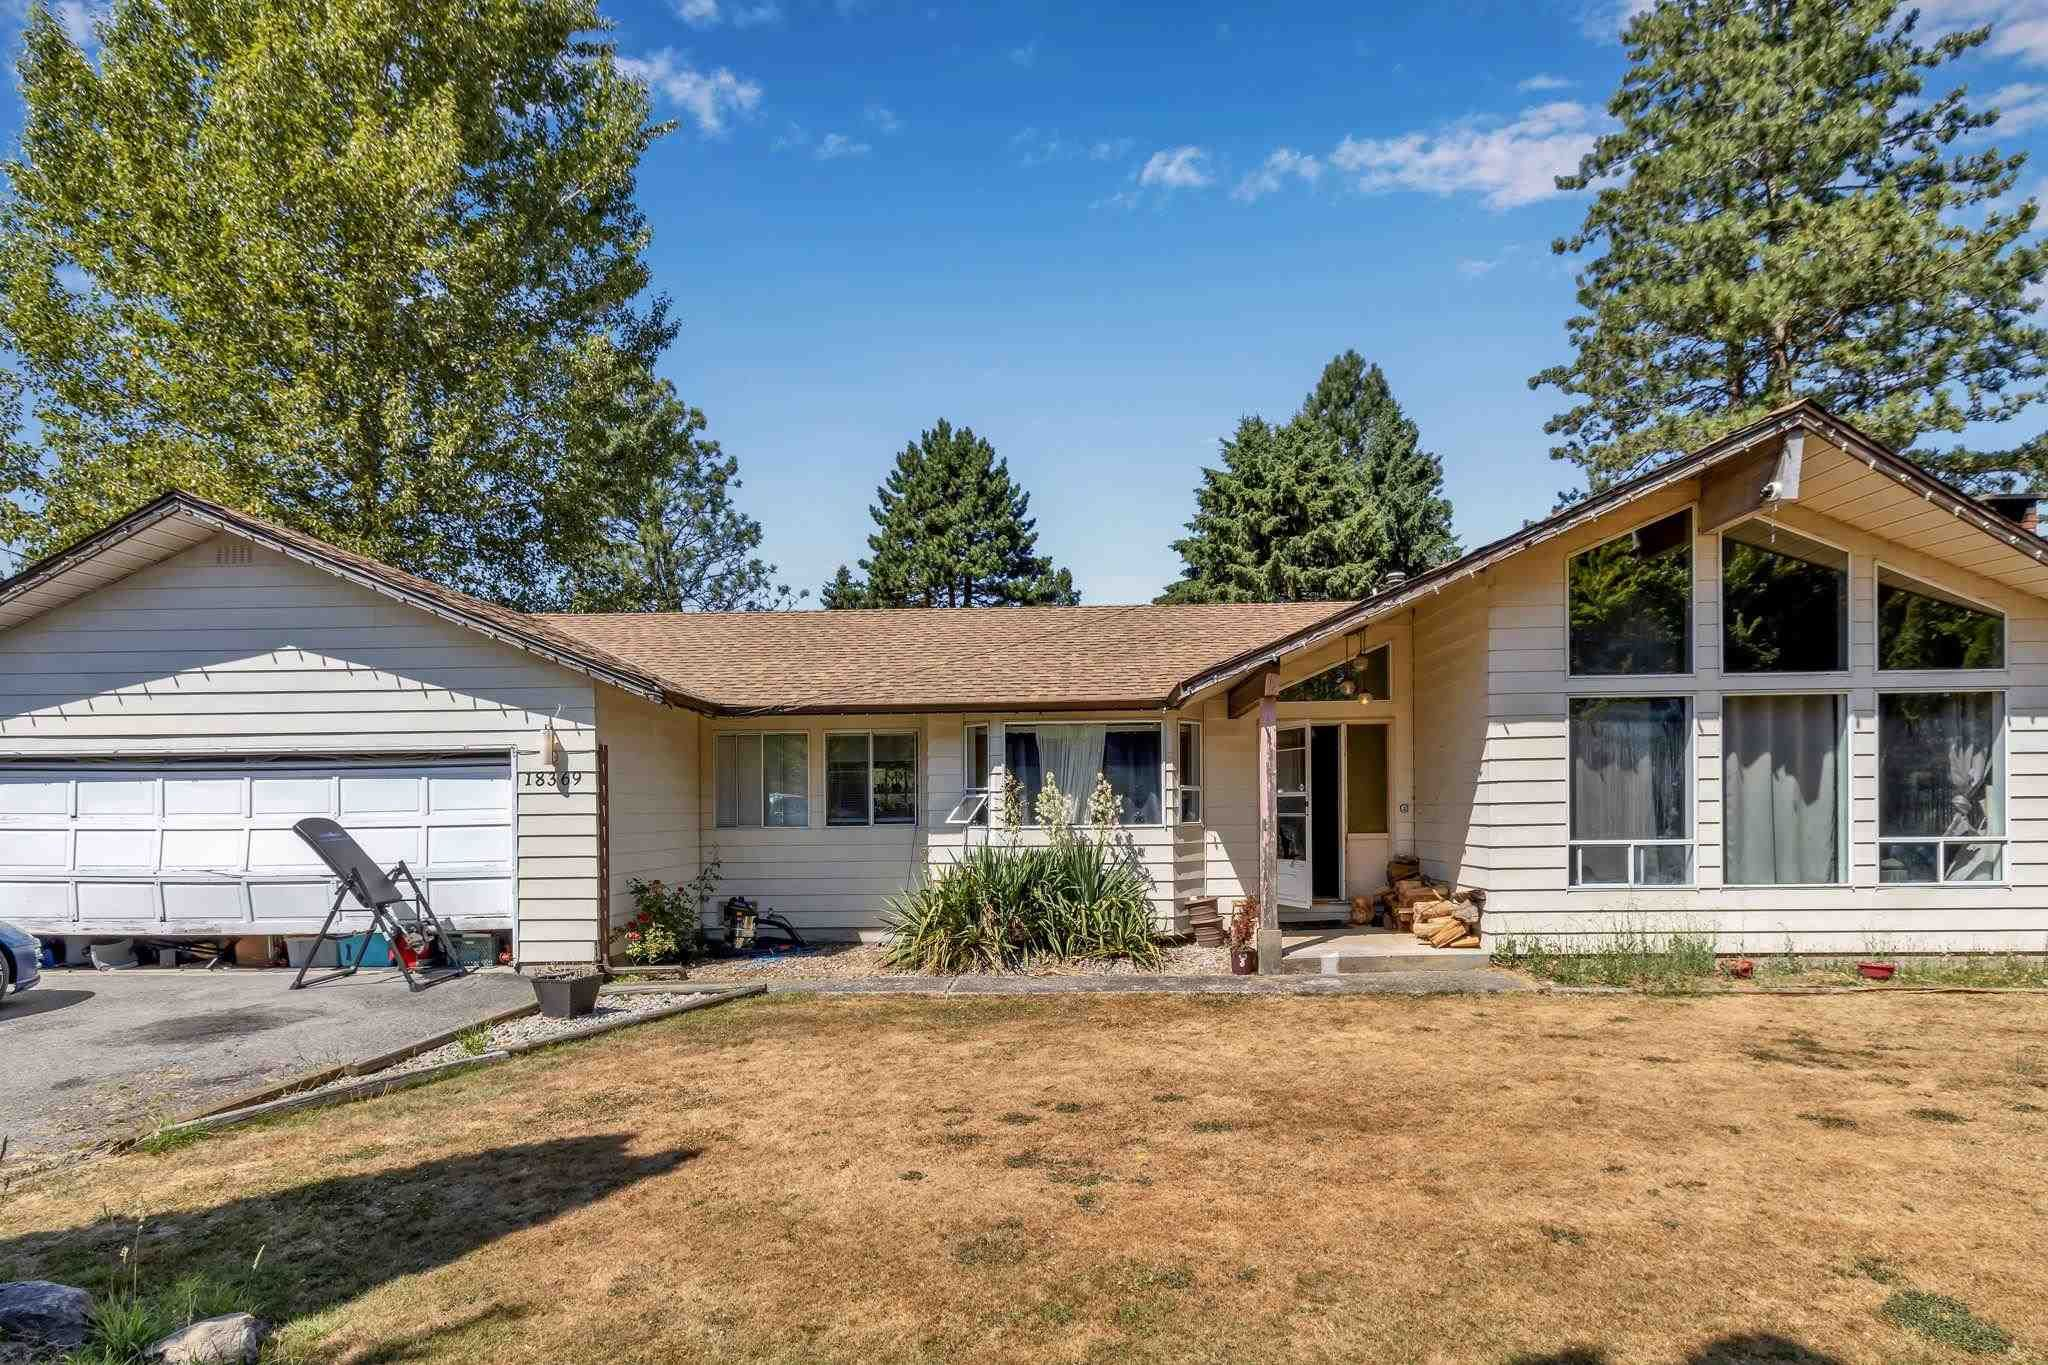 Main Photo: 18369 24 Avenue in Surrey: Hazelmere House for sale (South Surrey White Rock)  : MLS®# R2604279